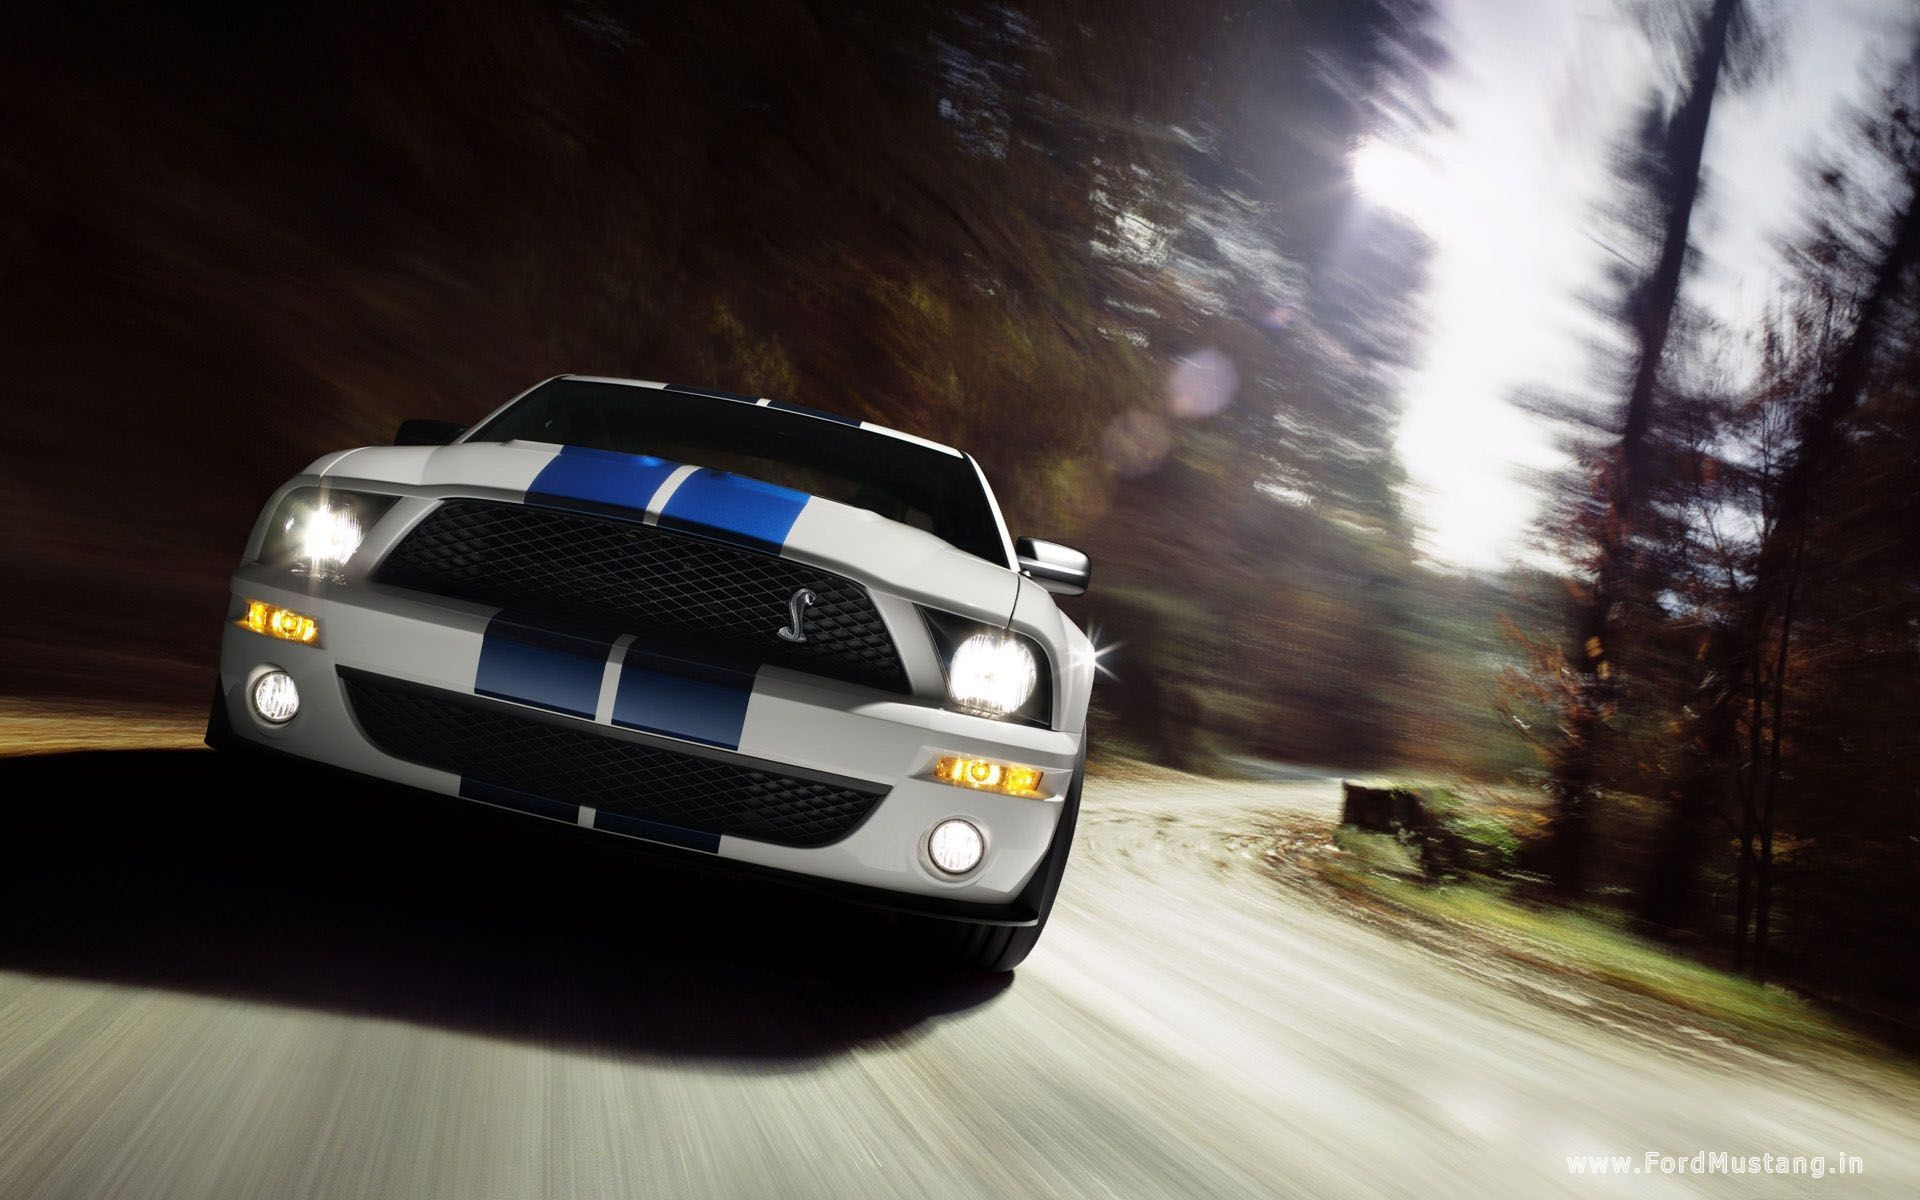 1920x1200 Ford Mustang Wallpapers - Wallpaper Cave